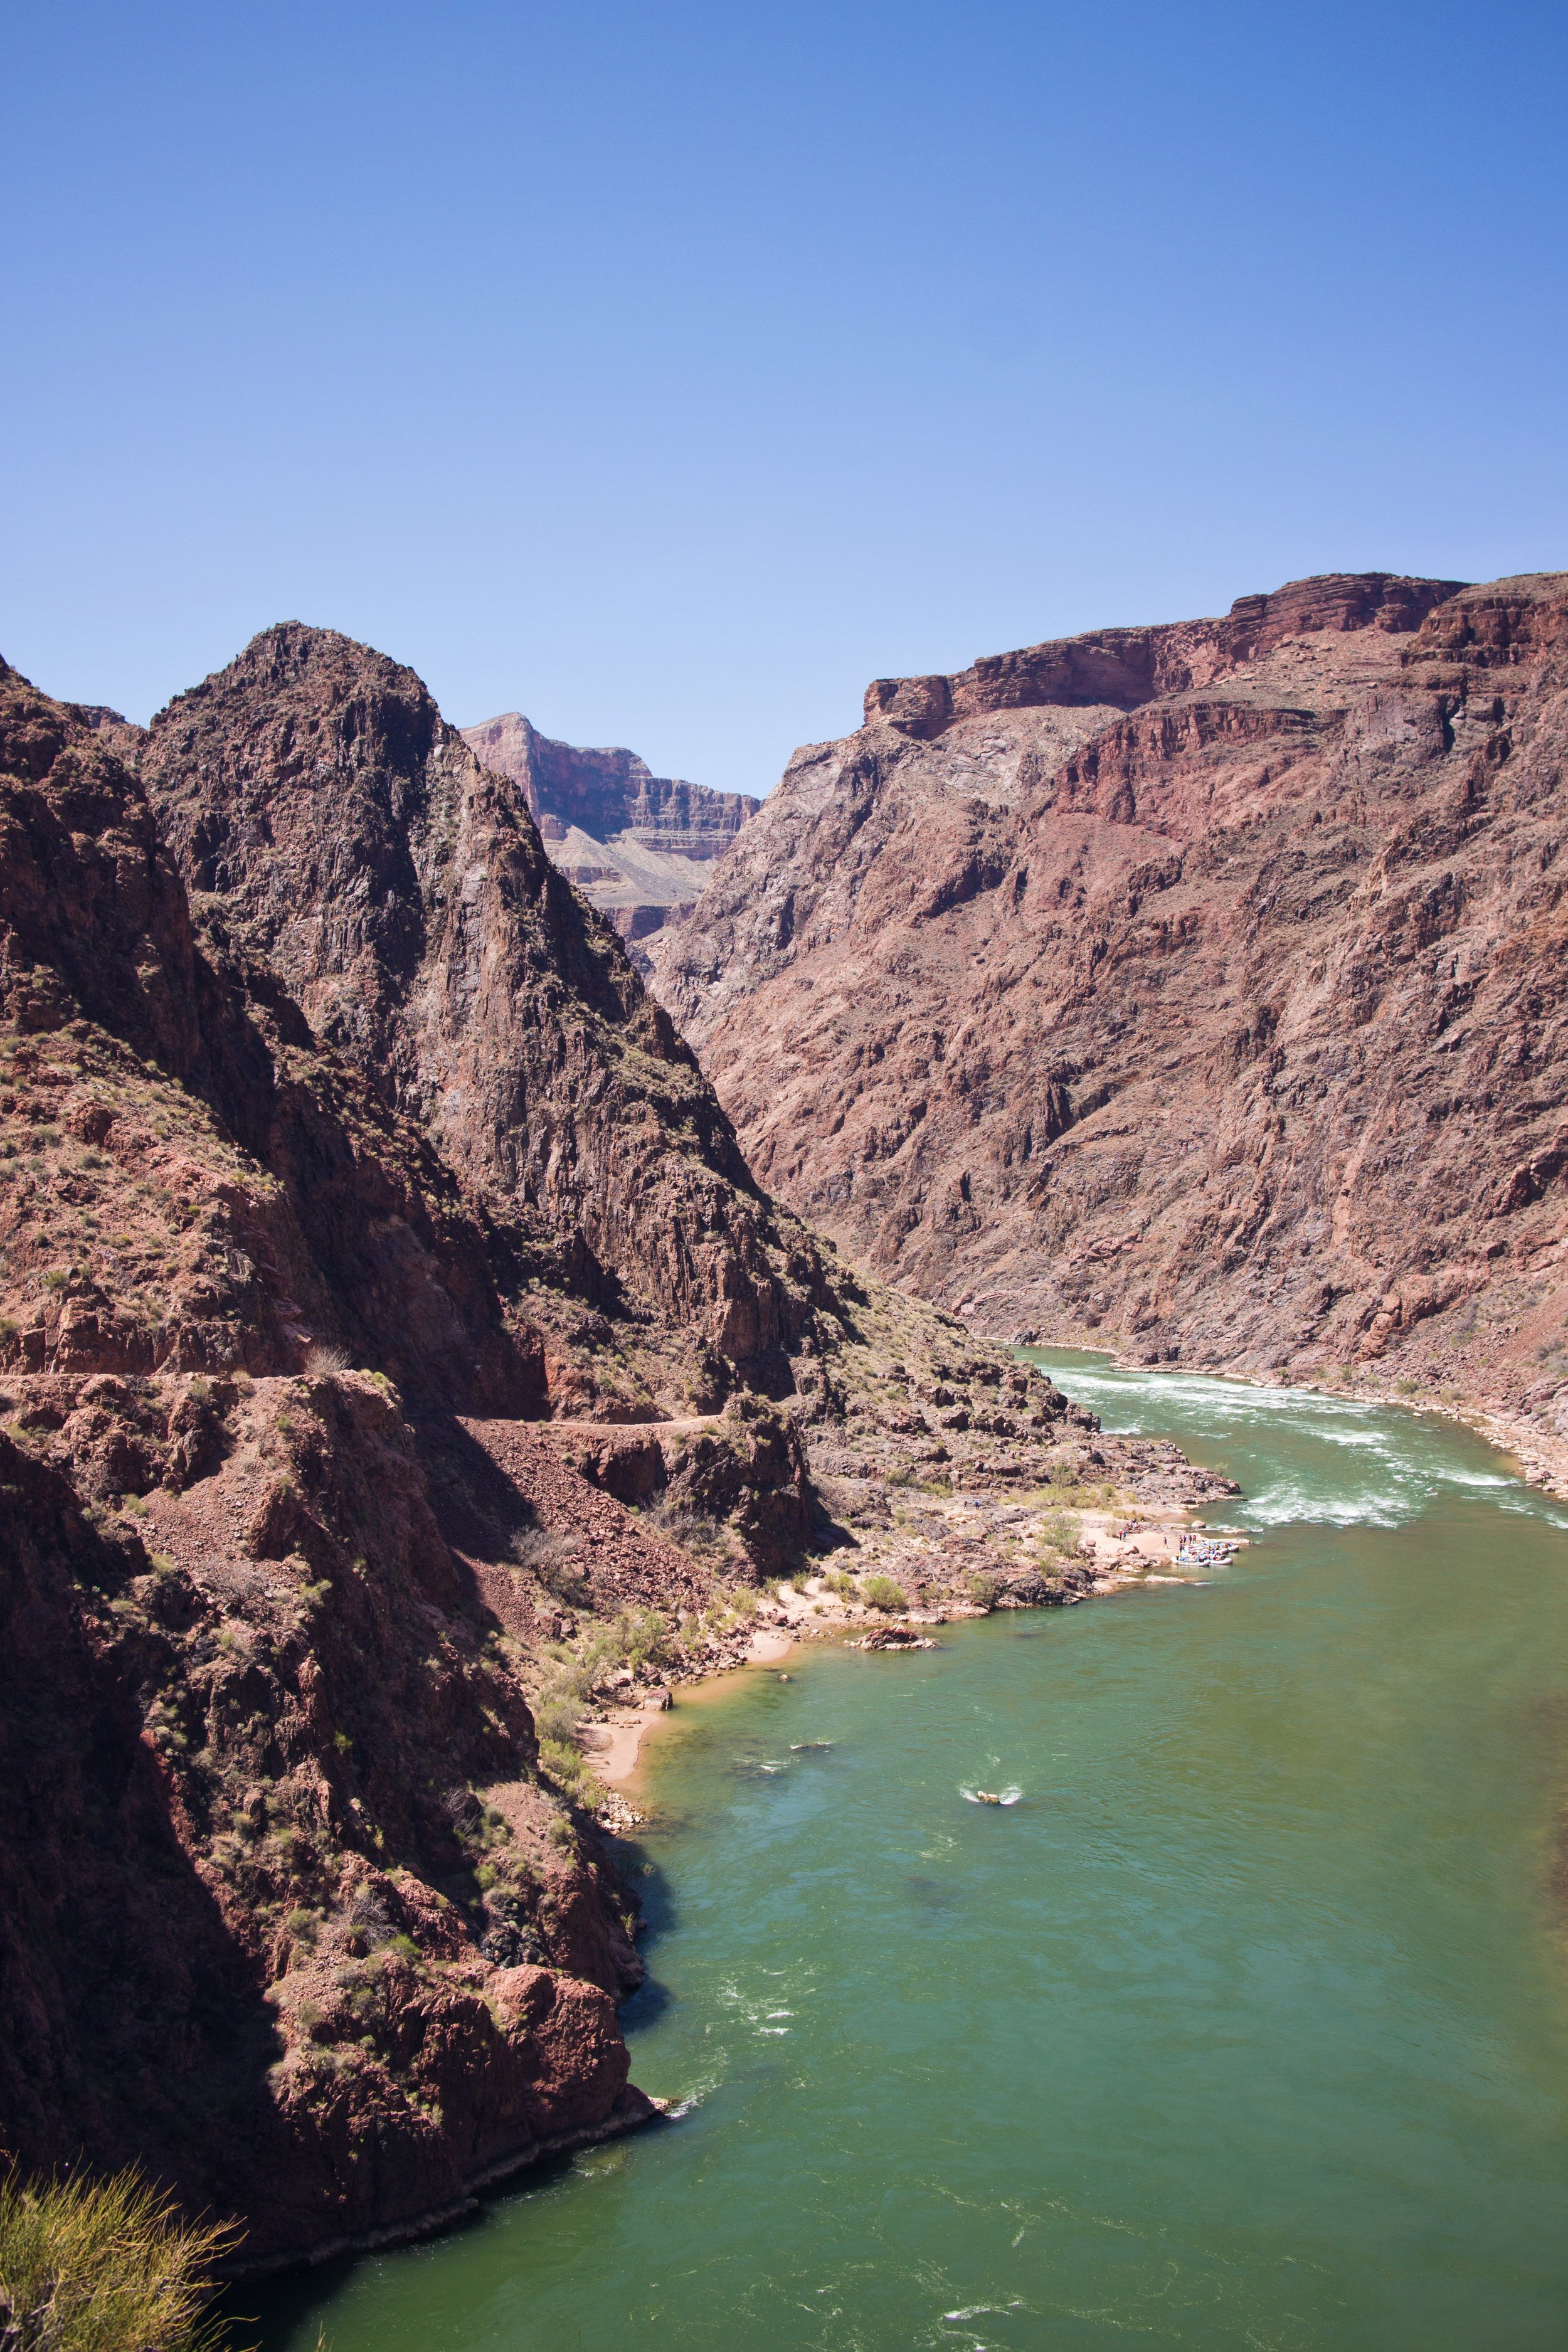 Great views of the river and canyon